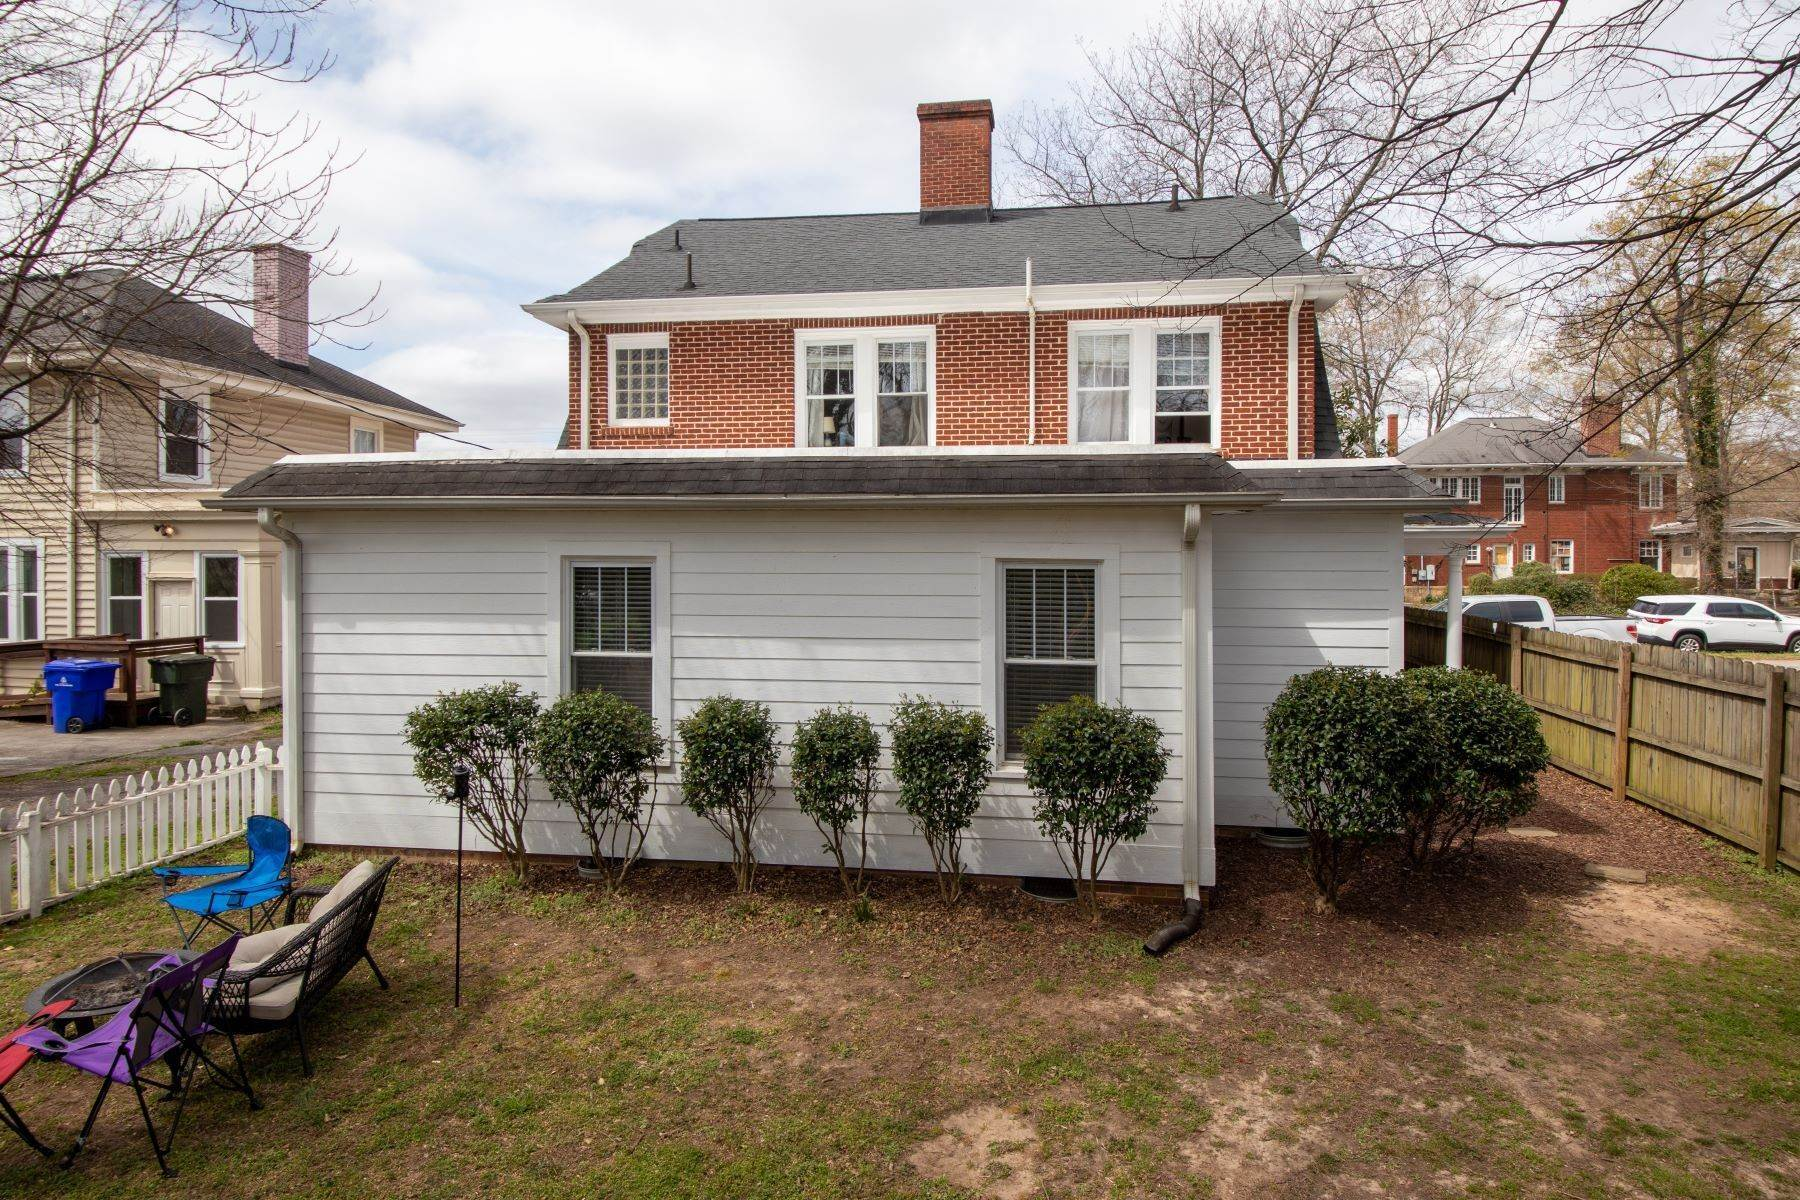 35. Single Family Homes for Sale at UNDER CONTRACT! 7 South Memminger Street, Greenville, SC 29601 Greenville, SC 29601